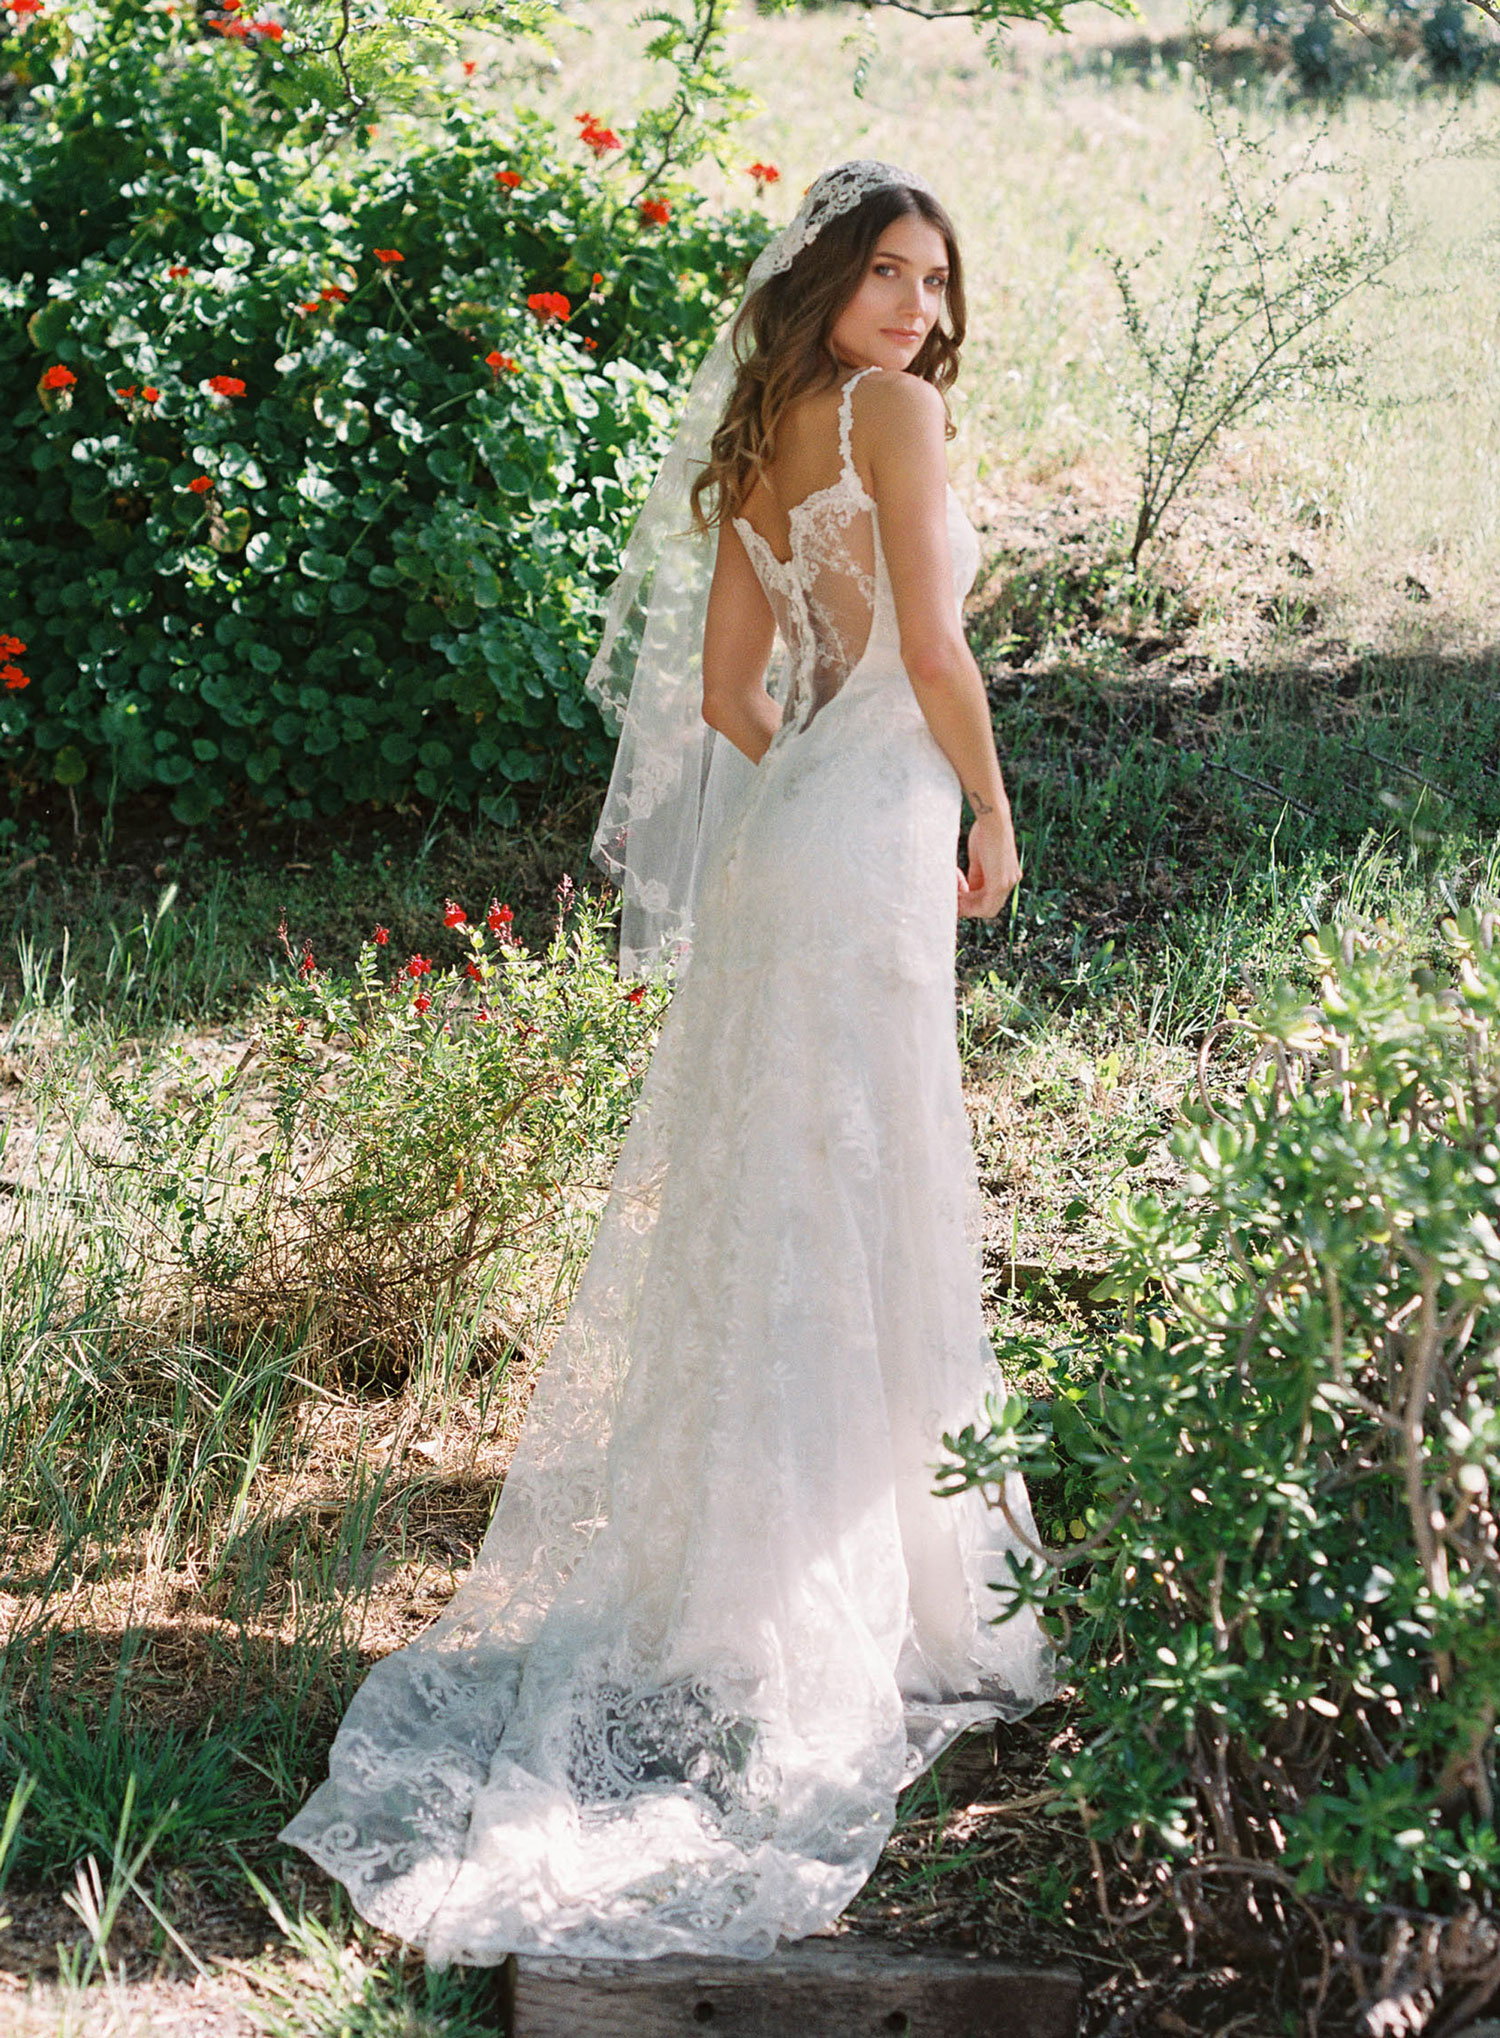 Claire Pettibone Romantique stylized shoot in Malibu California Dreamin' collection Santa Monica wedding dress back